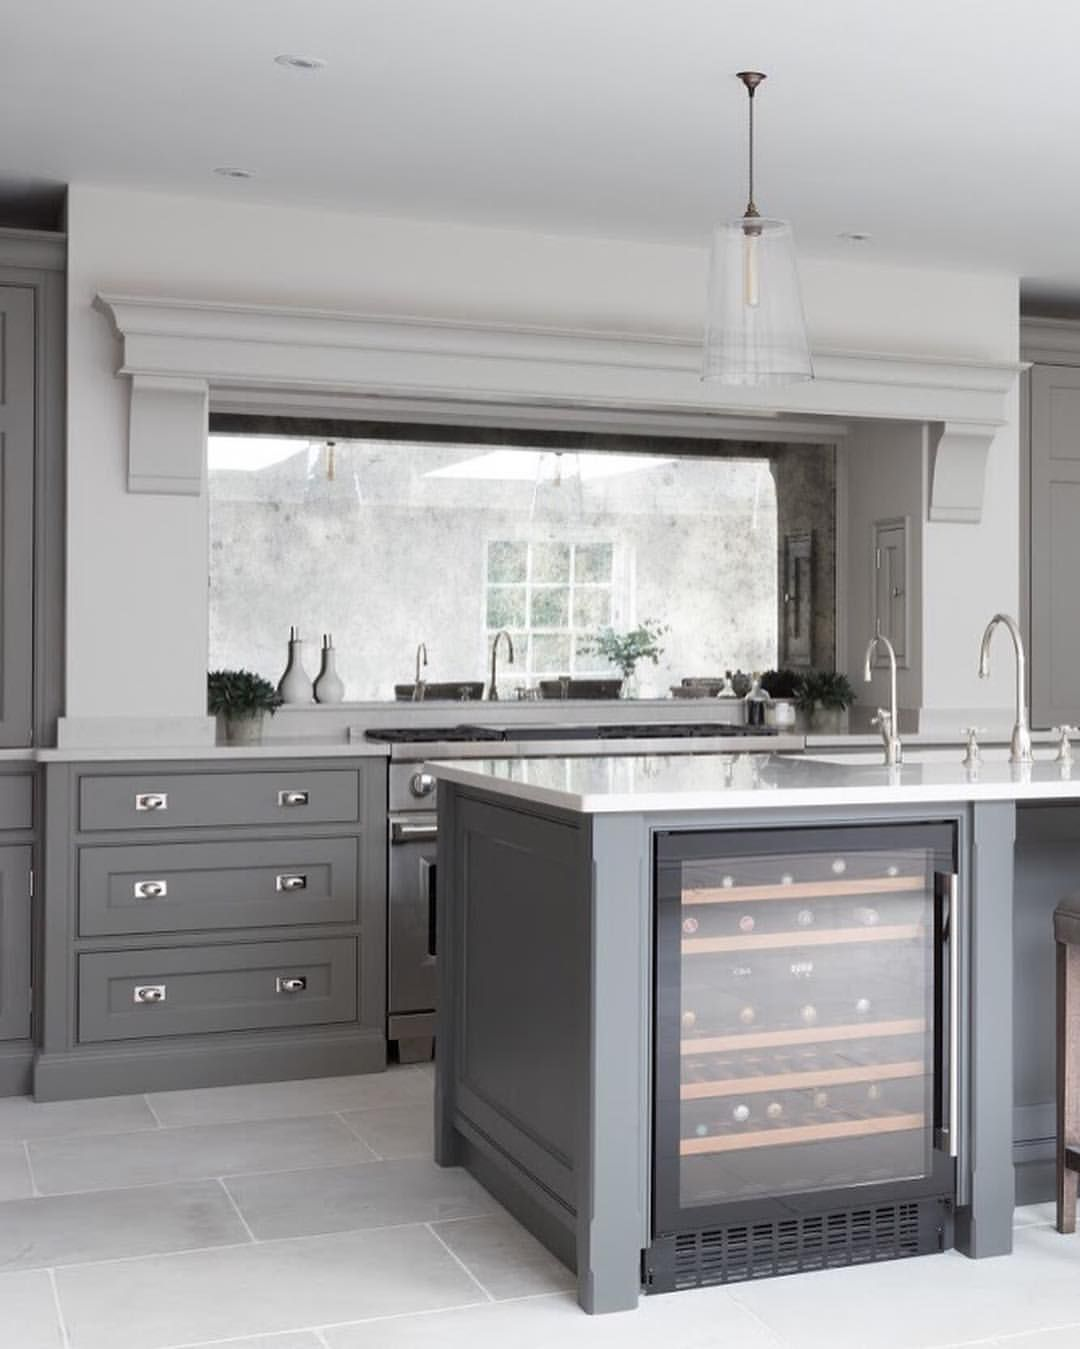 Appy Friday All Here S A Lovely Shot Of The Kitchen In The White House Project Which Is Really De Kitchen Remodel Open Plan Kitchen Living Room Kitchen Design The kitchen in the white house